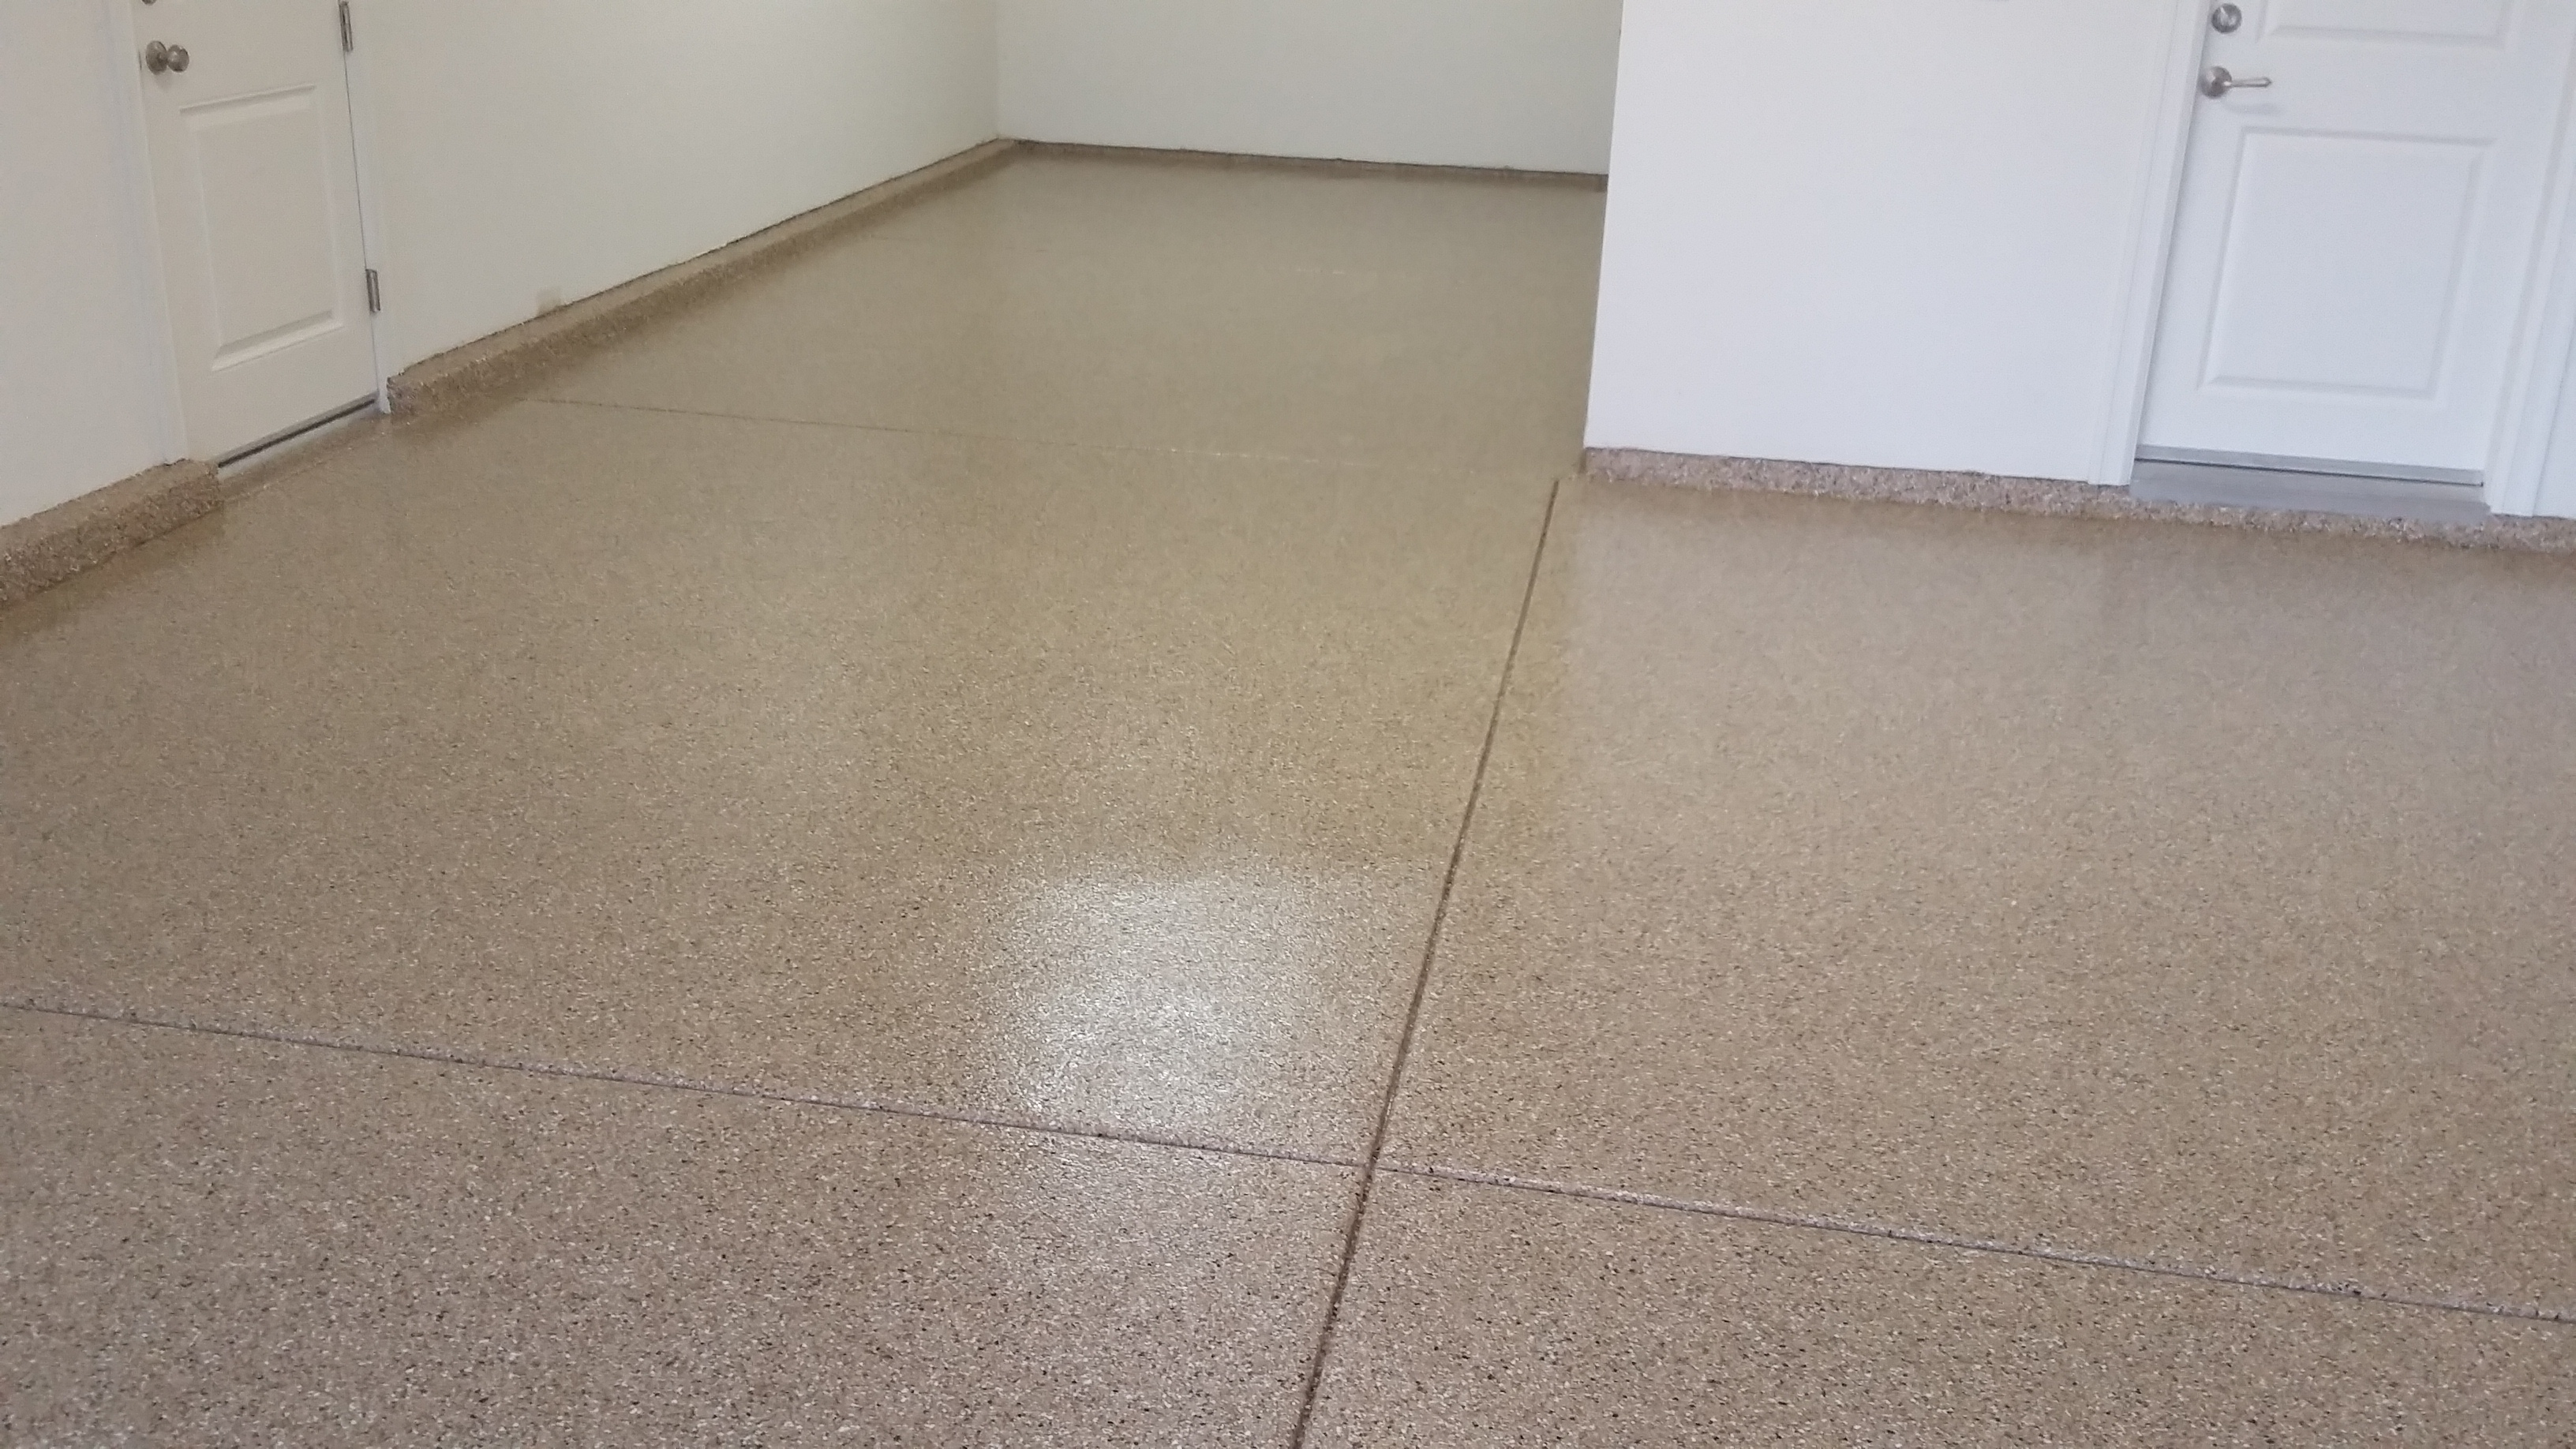 Expresso Flake garage floor system ca-resurfacing.com